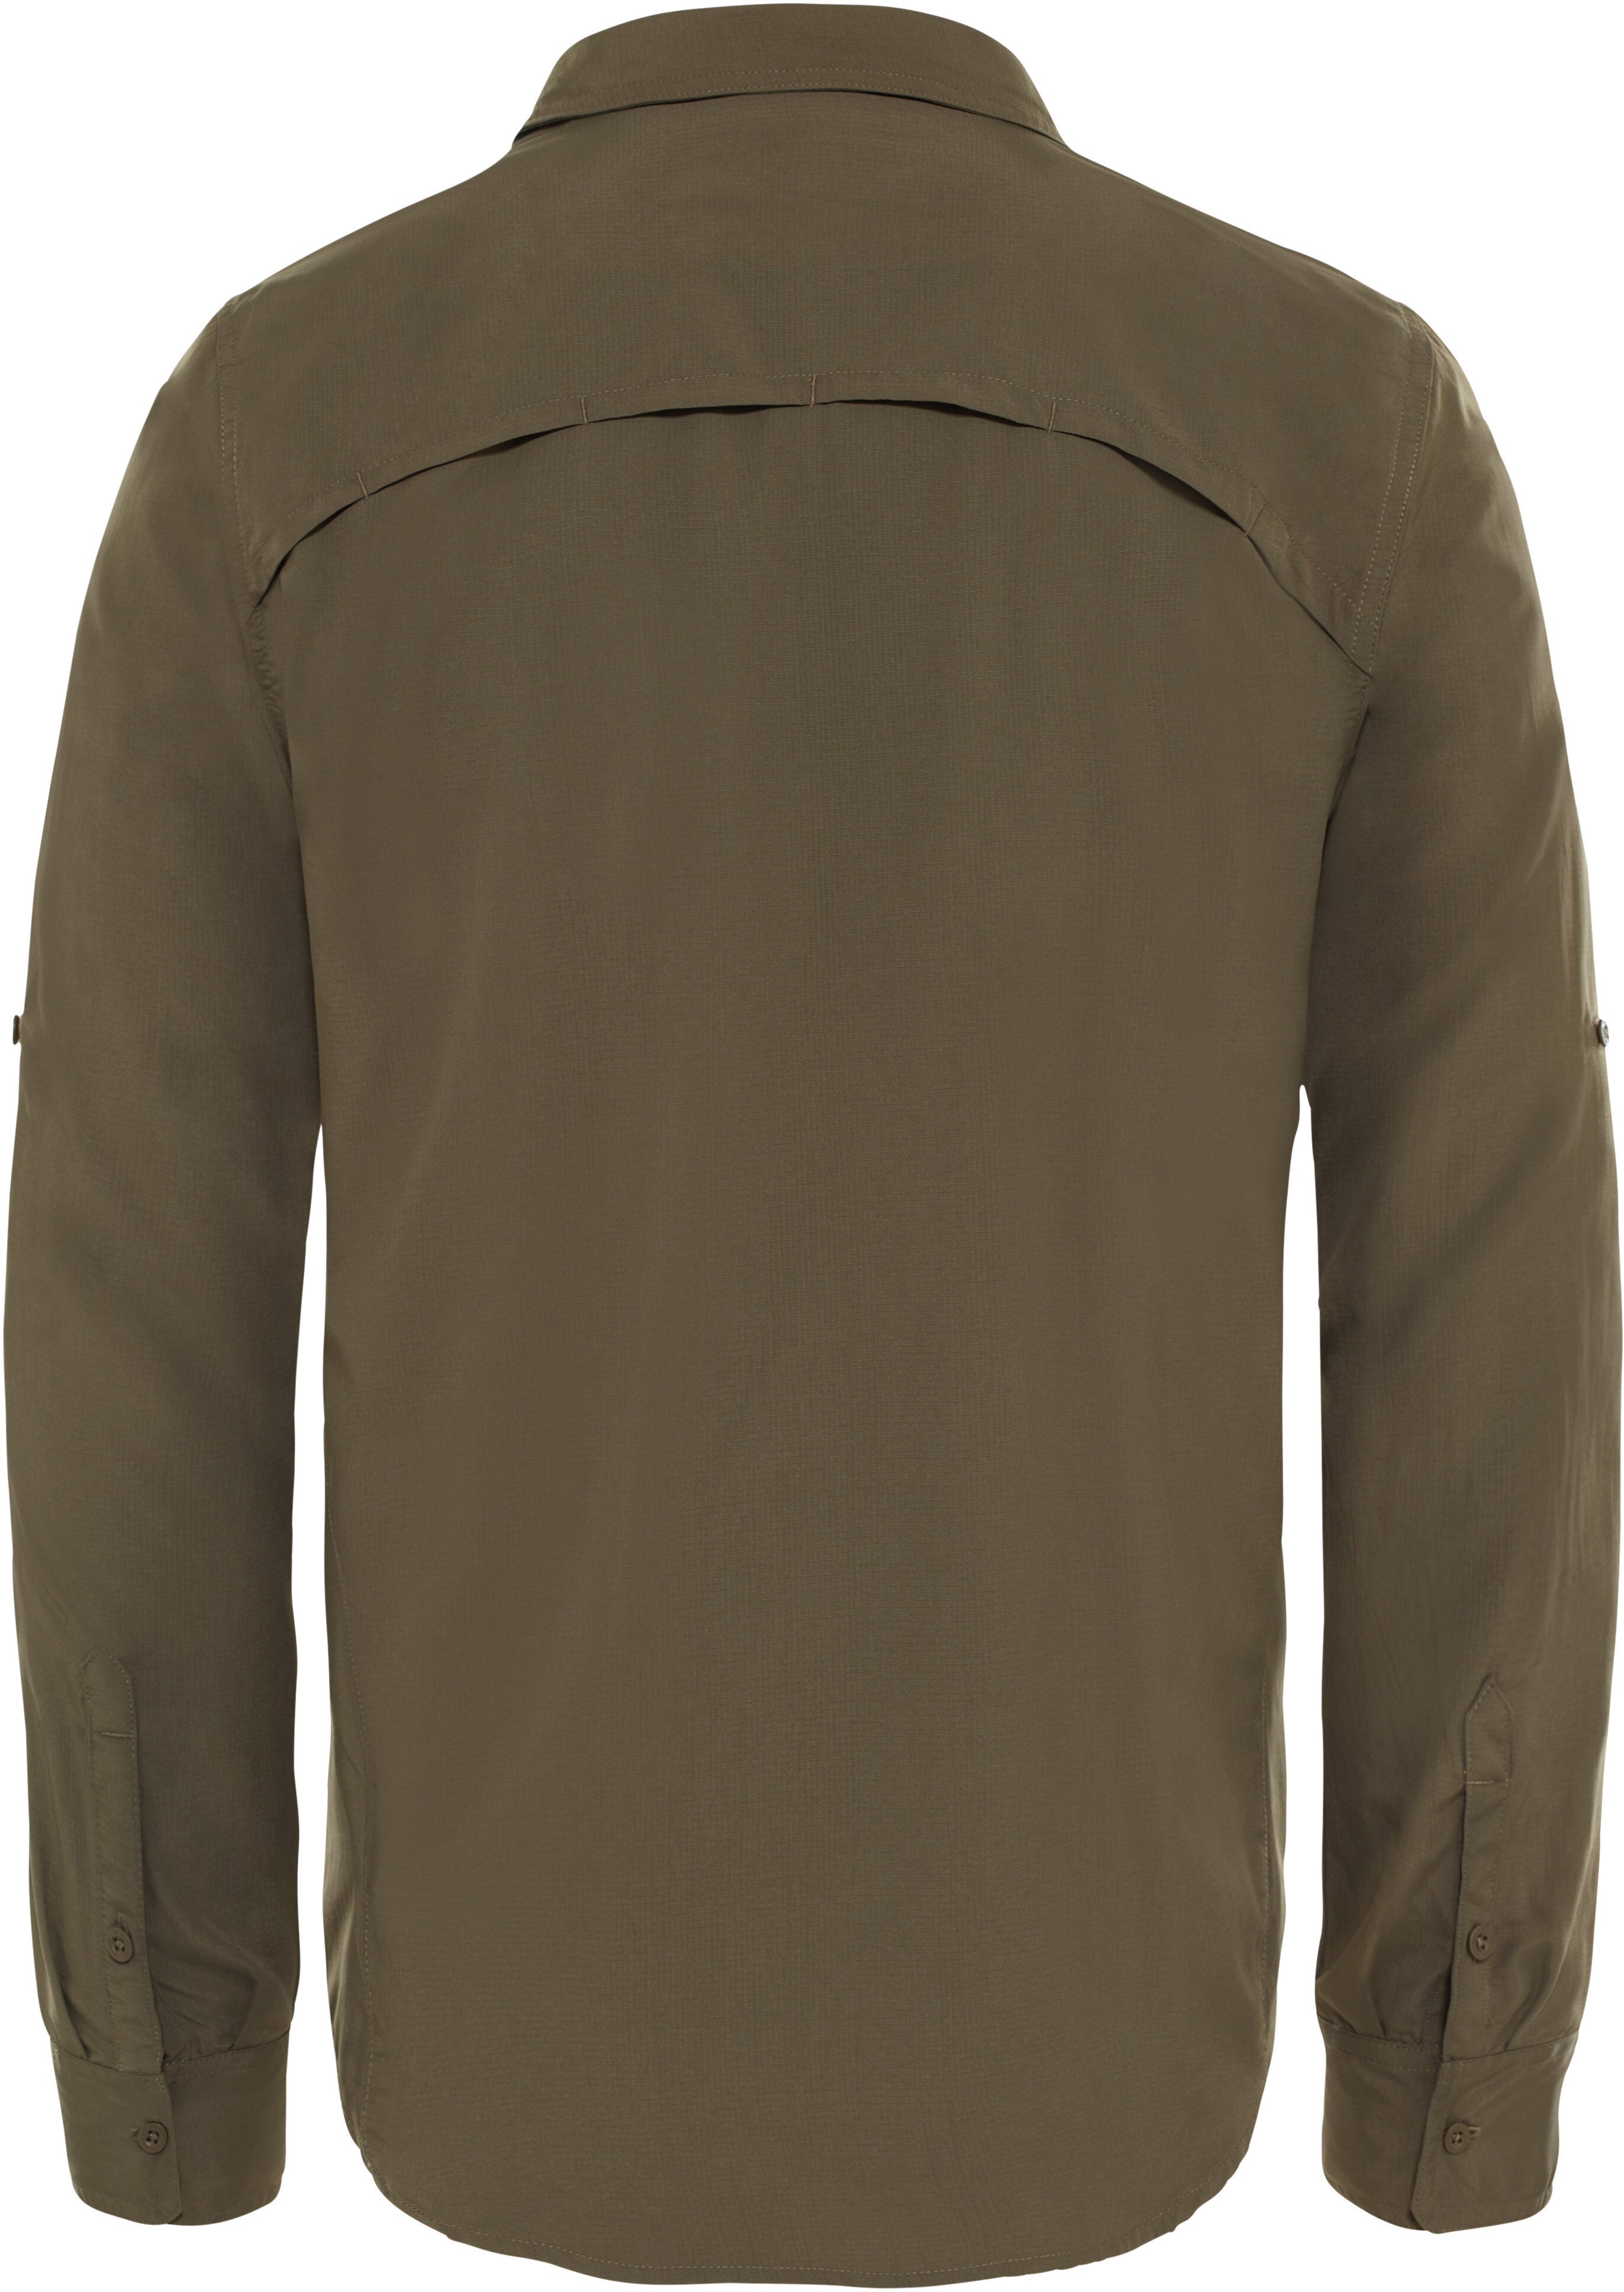 032a7498ed9ba The North Face Sequoia T-shirt à manches longues Homme, new taupe green